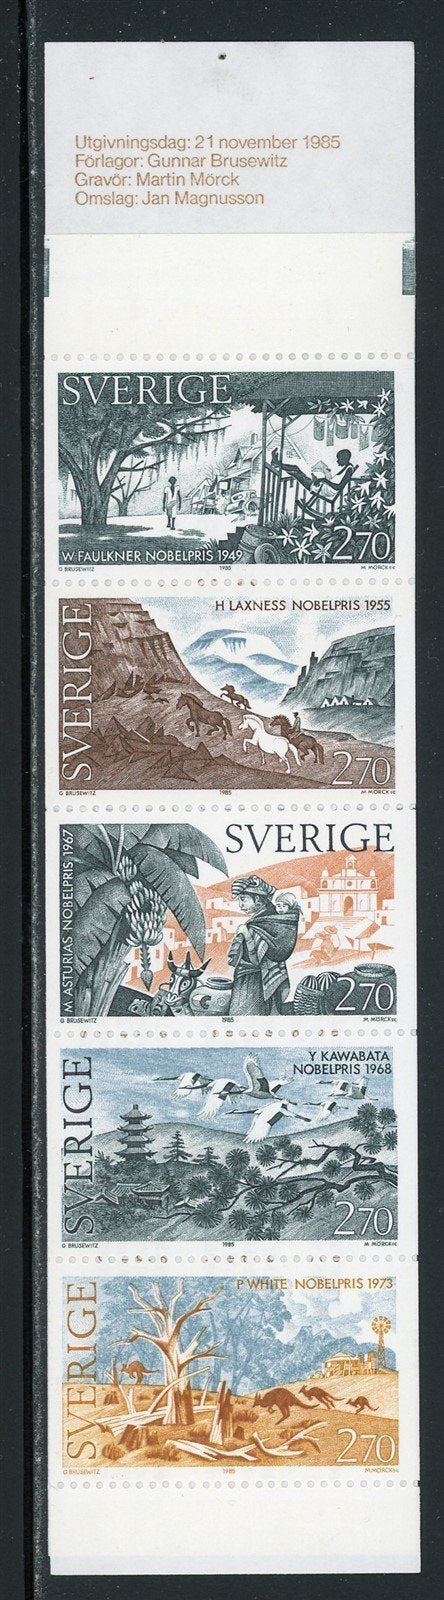 Sweden Scott #1566a MNH BOOKLET COMPLETE Nobel Laureates in Literature CV$9+